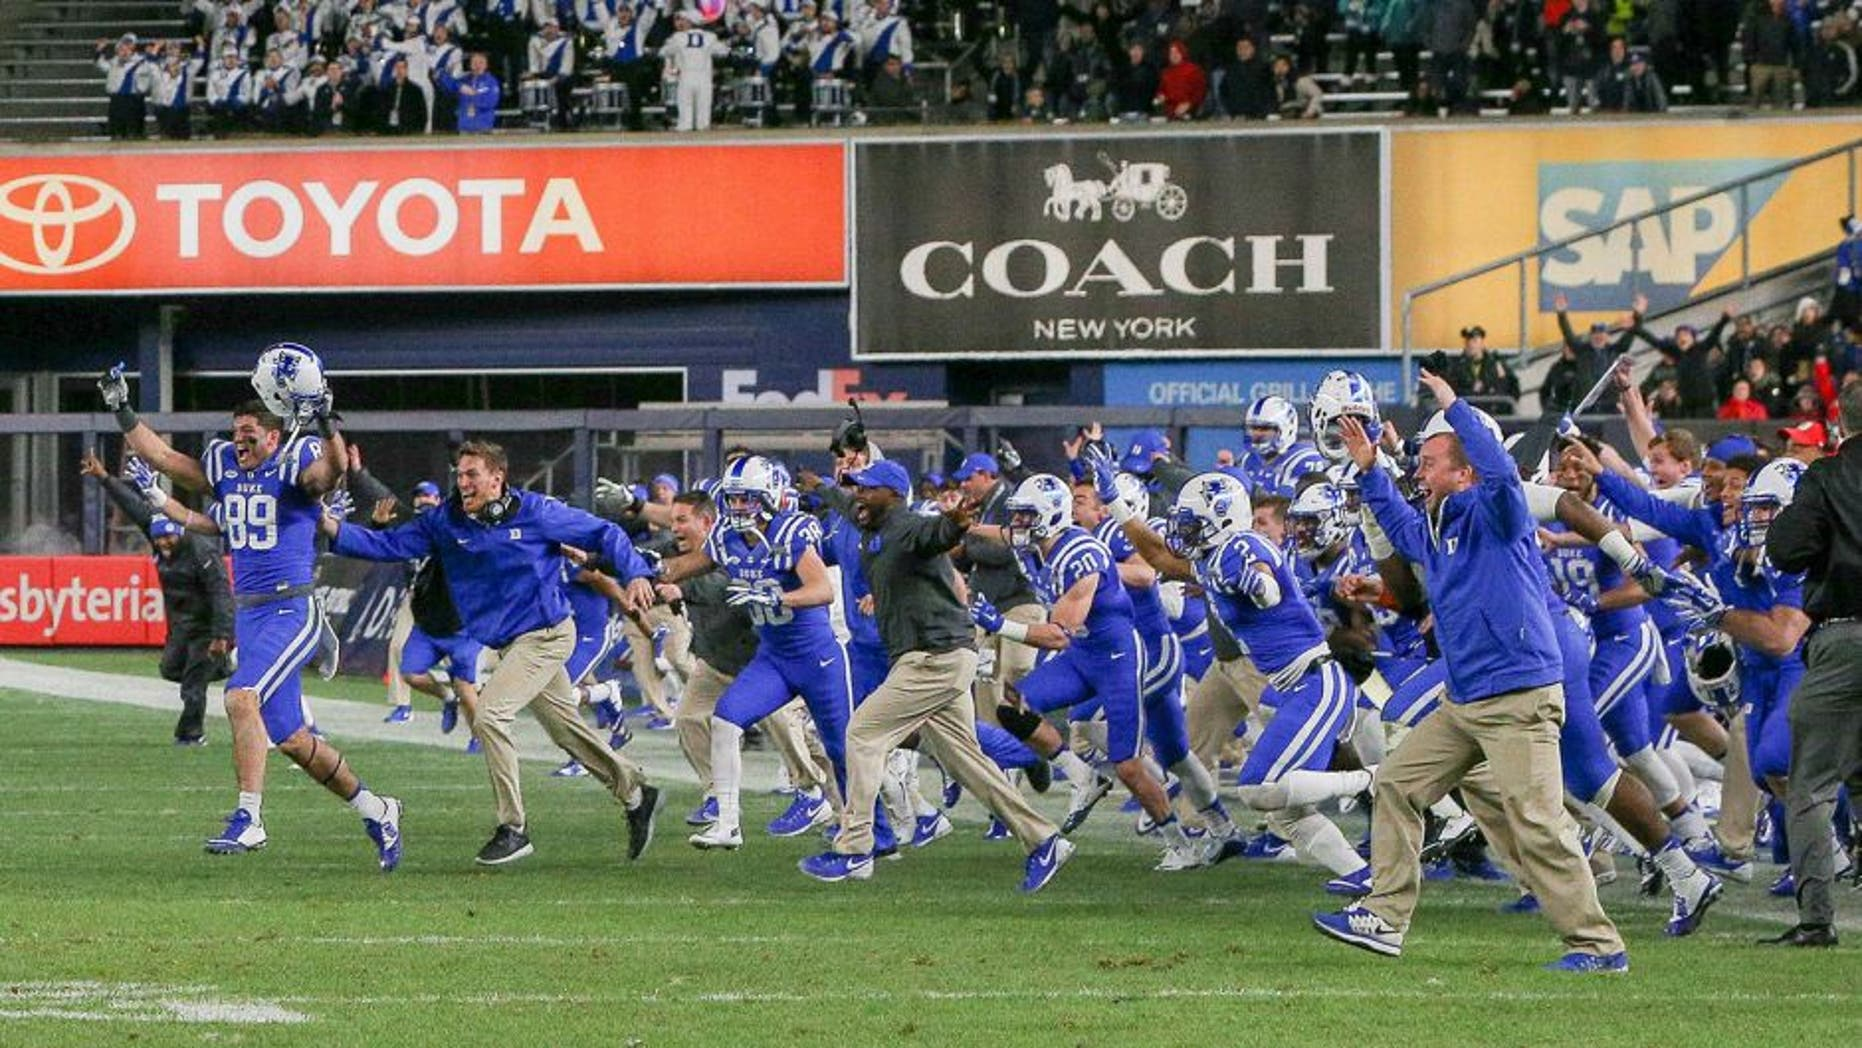 Dec 26, 2015; Bronx, NY, USA; The Duke Blue Devils players storms the field after the 2015 New Era Pinstripe Bowl against the Indiana Hoosiers at Yankee Stadium. The Blue Devils won 44-41 in overtime. Mandatory Credit: Vincent Carchietta-USA TODAY Sports